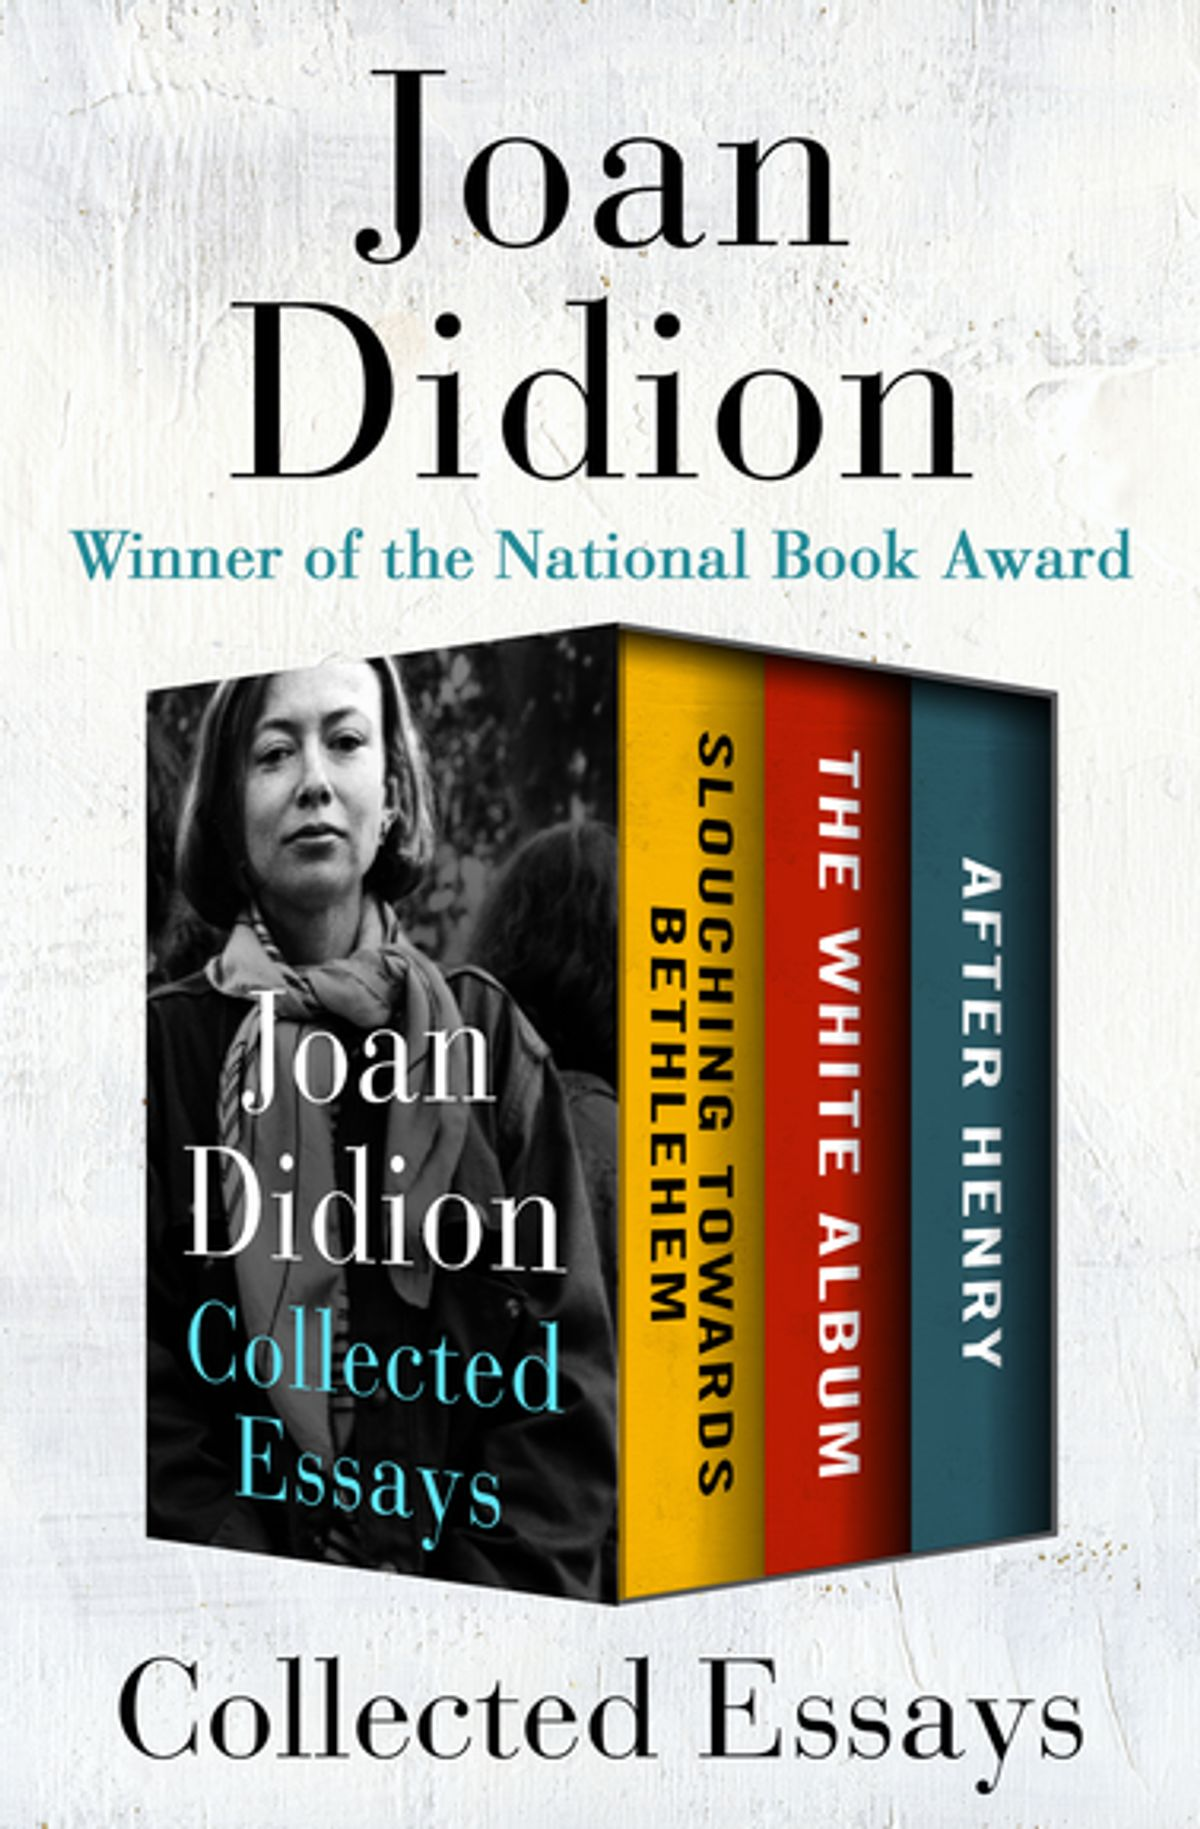 010 Collected Essays Joan Didion Essay Singular Collections On Santa Ana Winds Amazon Full